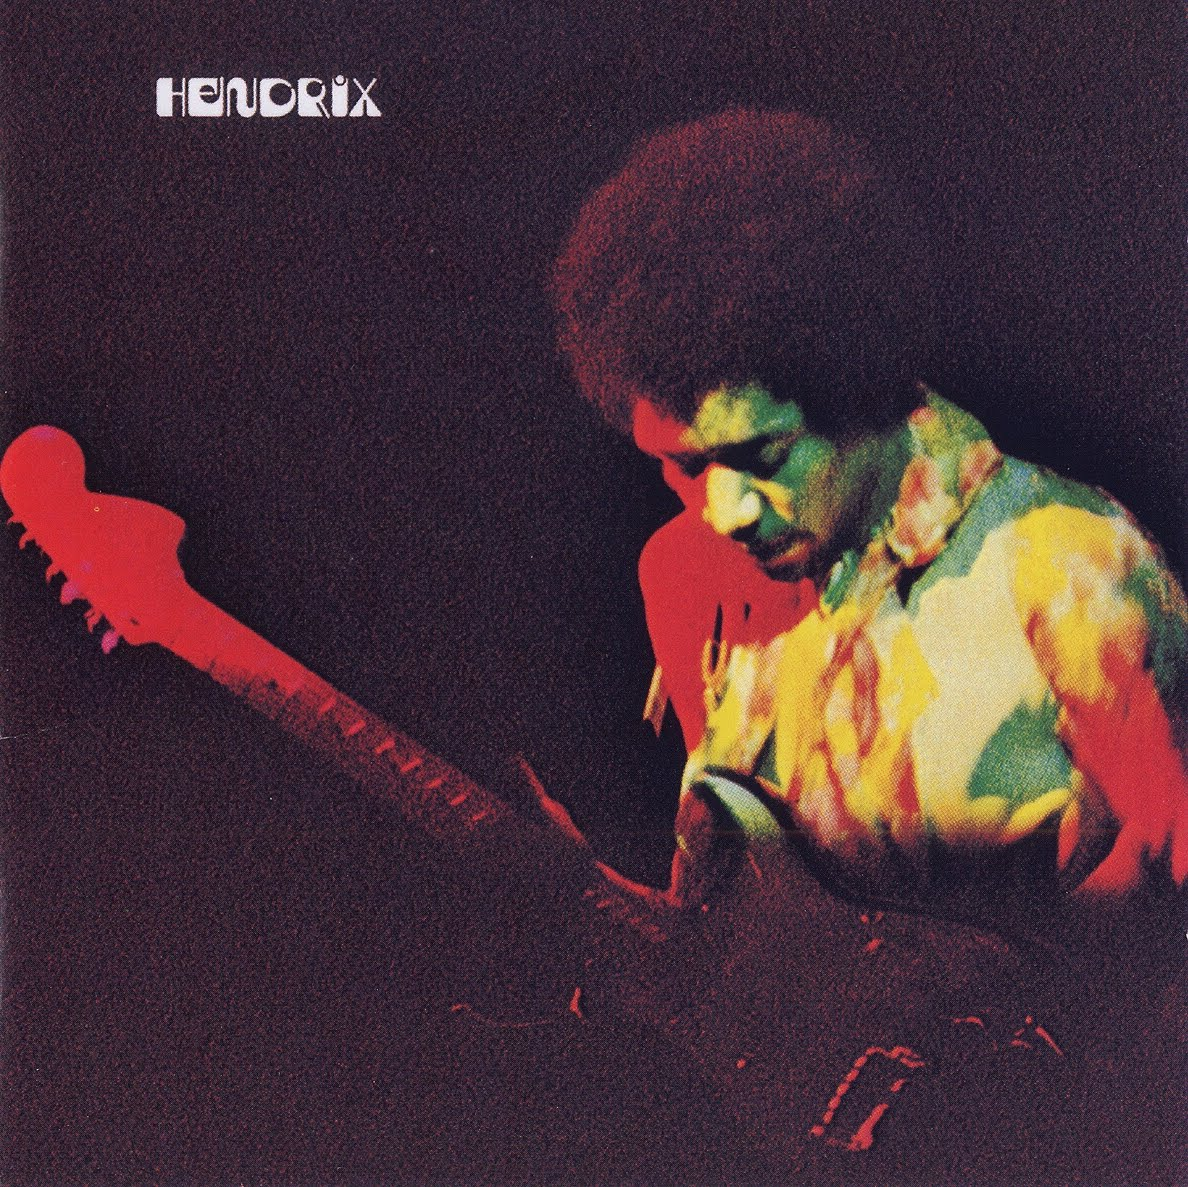 Jimi Hendrix S Best Album Is His Most Underrated